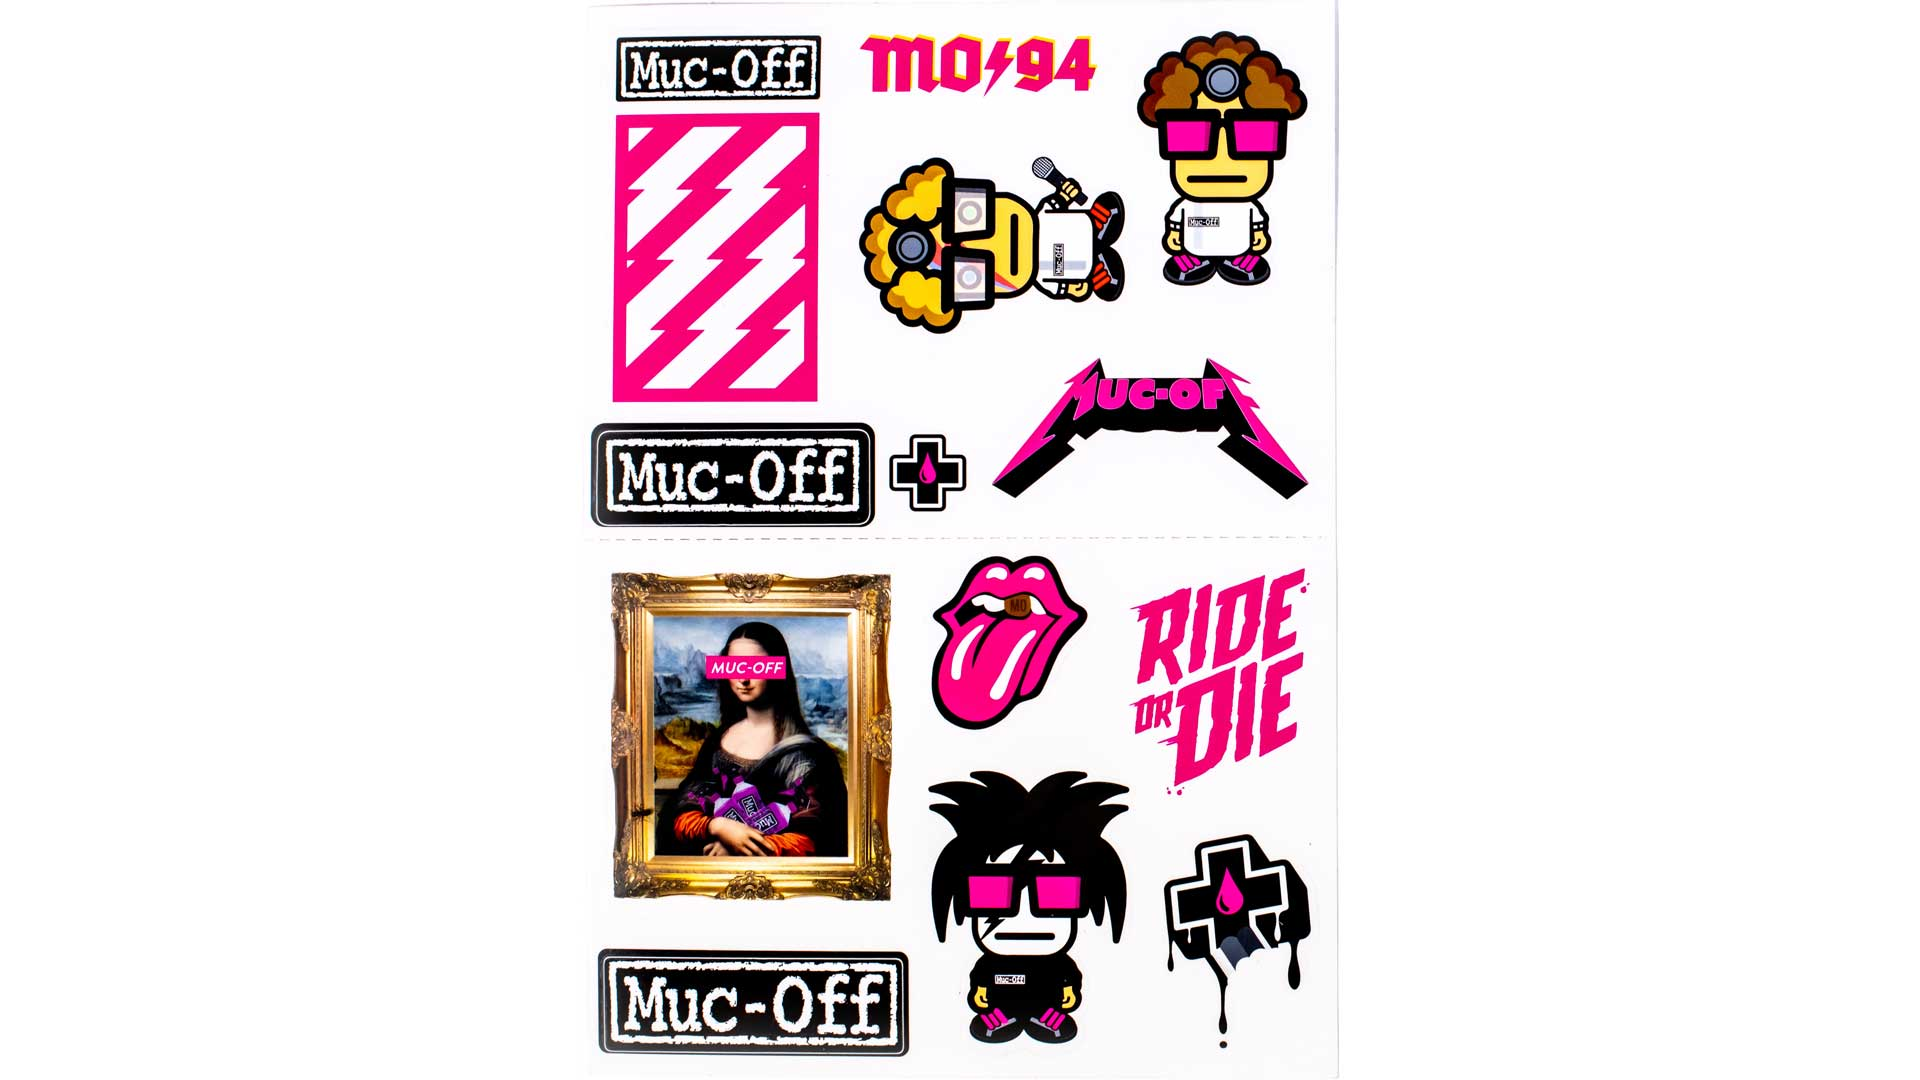 Muc-off sticker sheet on white background